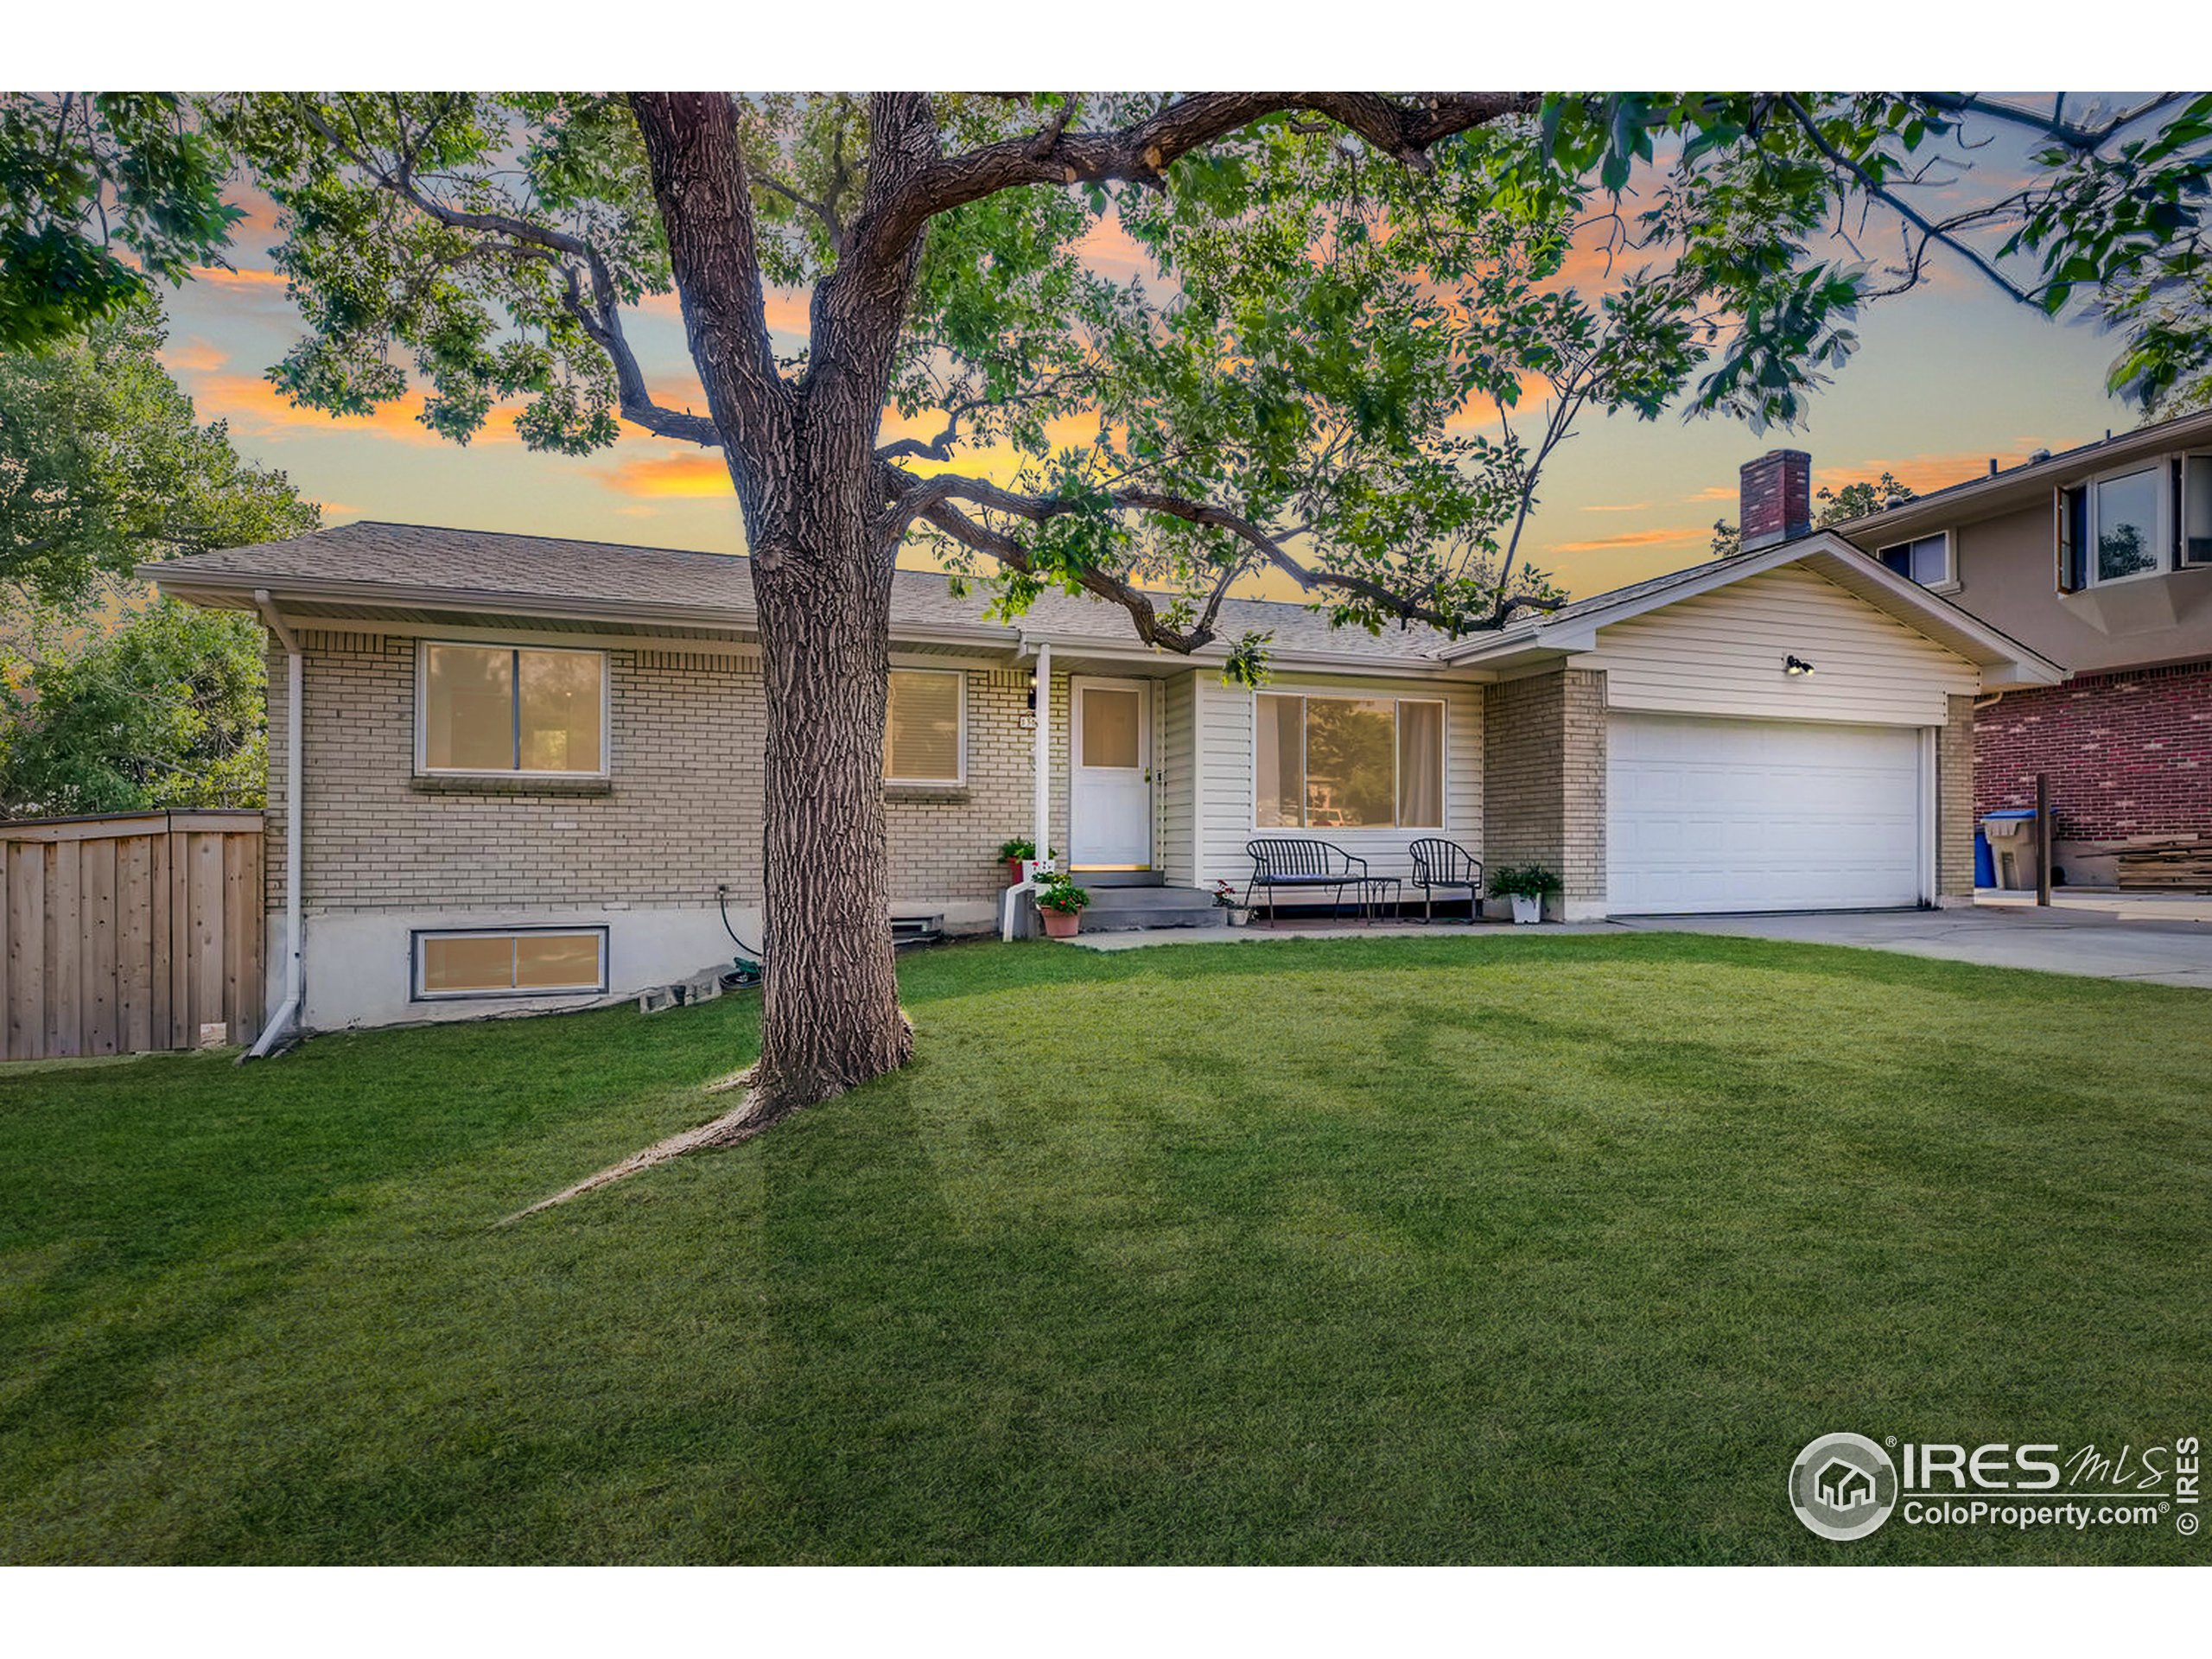 What a location! Coveted Green Mountain Village Ranch style home on a cul-de-sac across from Green Mountain High School.  Convenience to amenities shines as you are close to the rec center w/indoor pool, open space with trails and plenty of shopping and dining! This ranch home features a formal living and dining room, updated kitchen with stainless steel appliances, new white cabinetry and updated countertops.  The adjoining family room features a cozy fireplace.  The primary bedroom includes an updated 3/4 bath, and 2 additional bedrooms share the main level full bathroom. A daylight basement provides space for a large rec room, 2 additional bedrooms, 3/4 bath and laundry room.  Newer carpet and laminate on the main level with wired internet in most rooms. Fully fenced backyard has a shed and mature trees.  Enjoy the Colorado lifestyle with all the amenities so close to home!